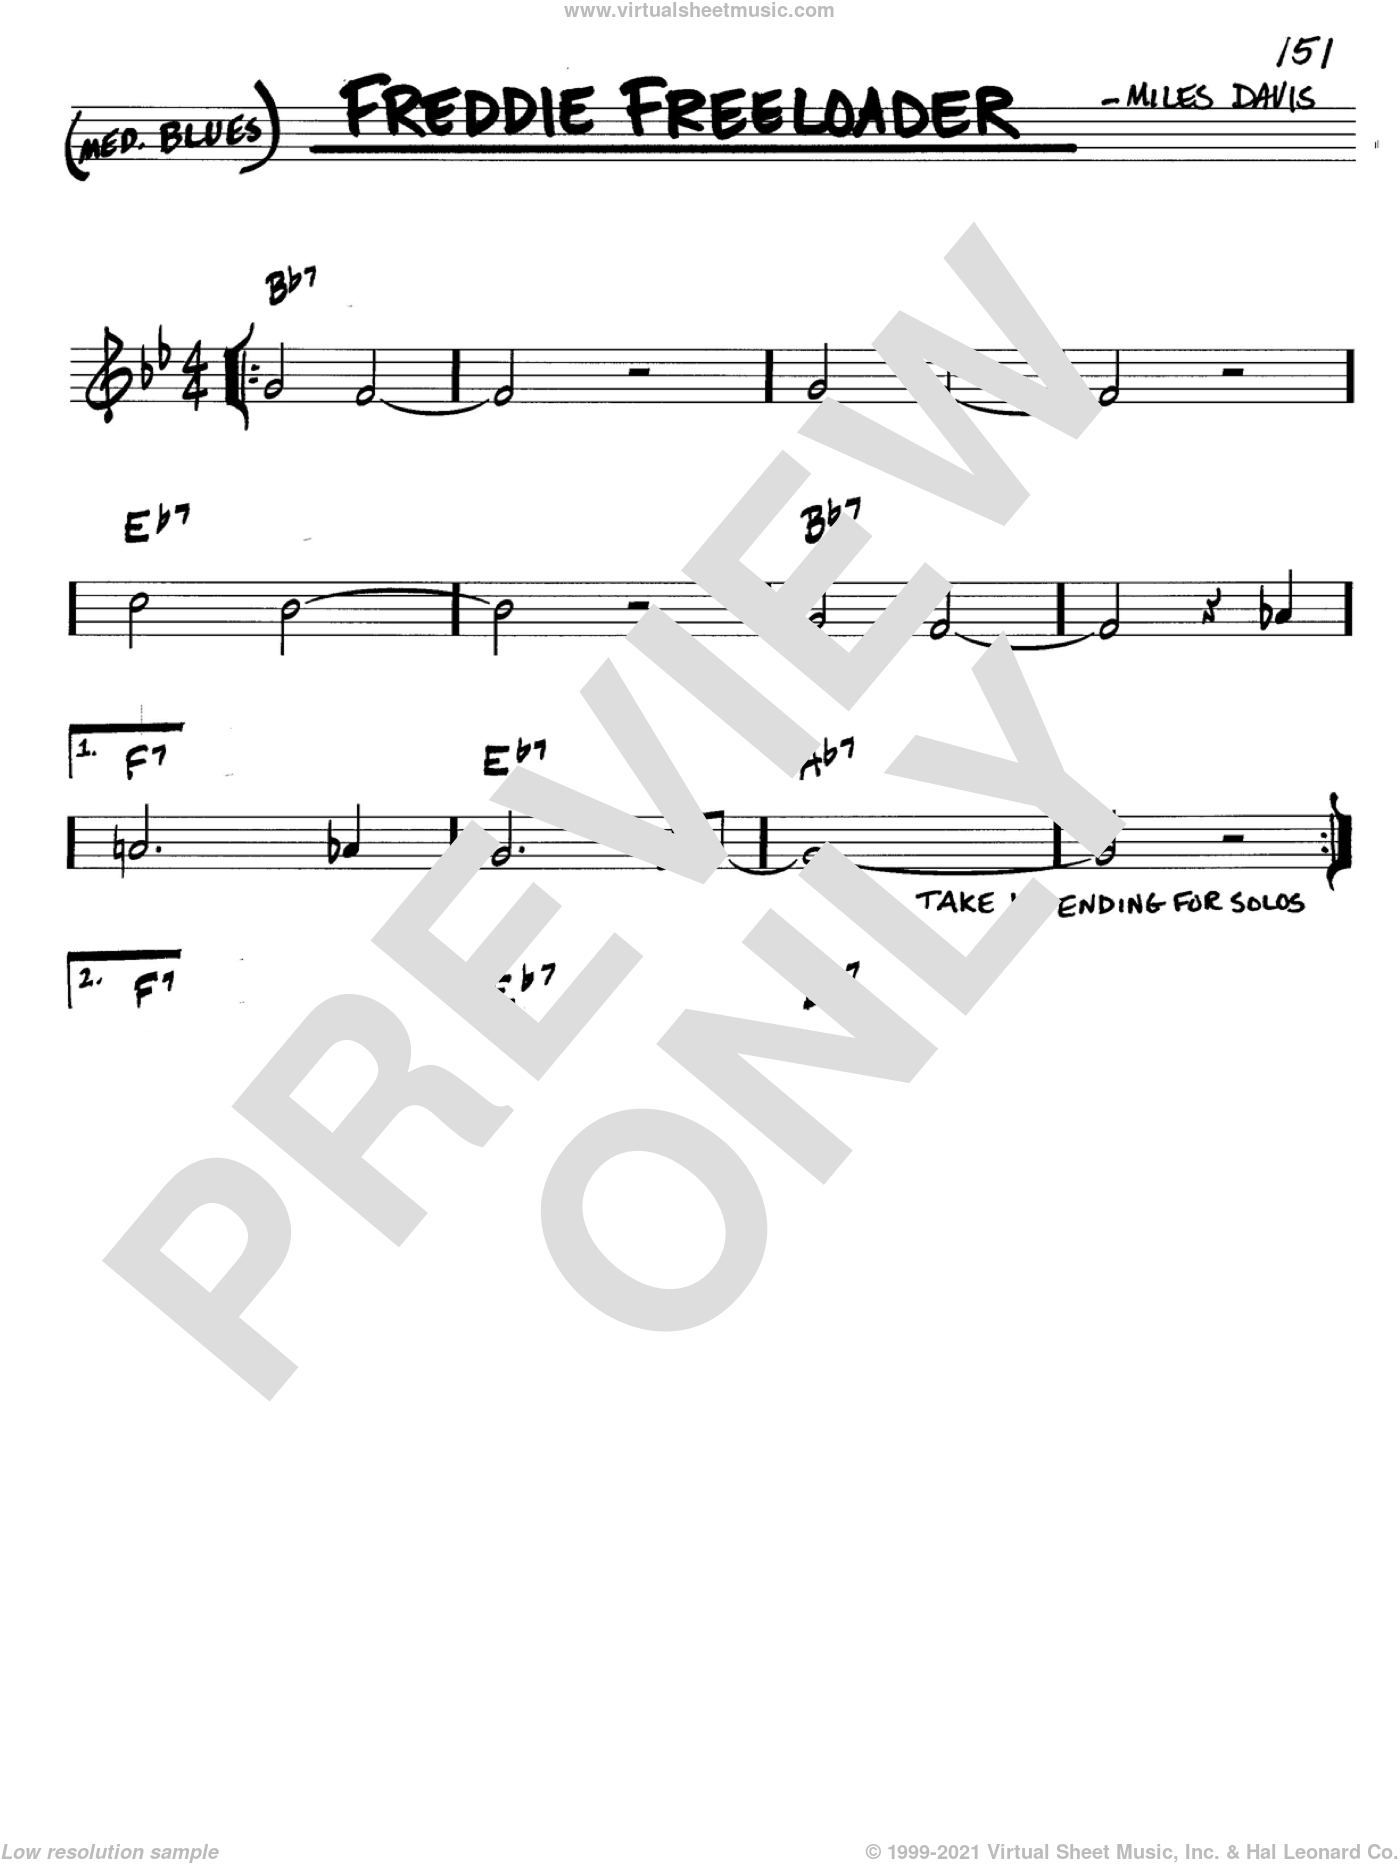 Freddie Freeloader sheet music for voice and other instruments (in C) by Miles Davis, intermediate skill level